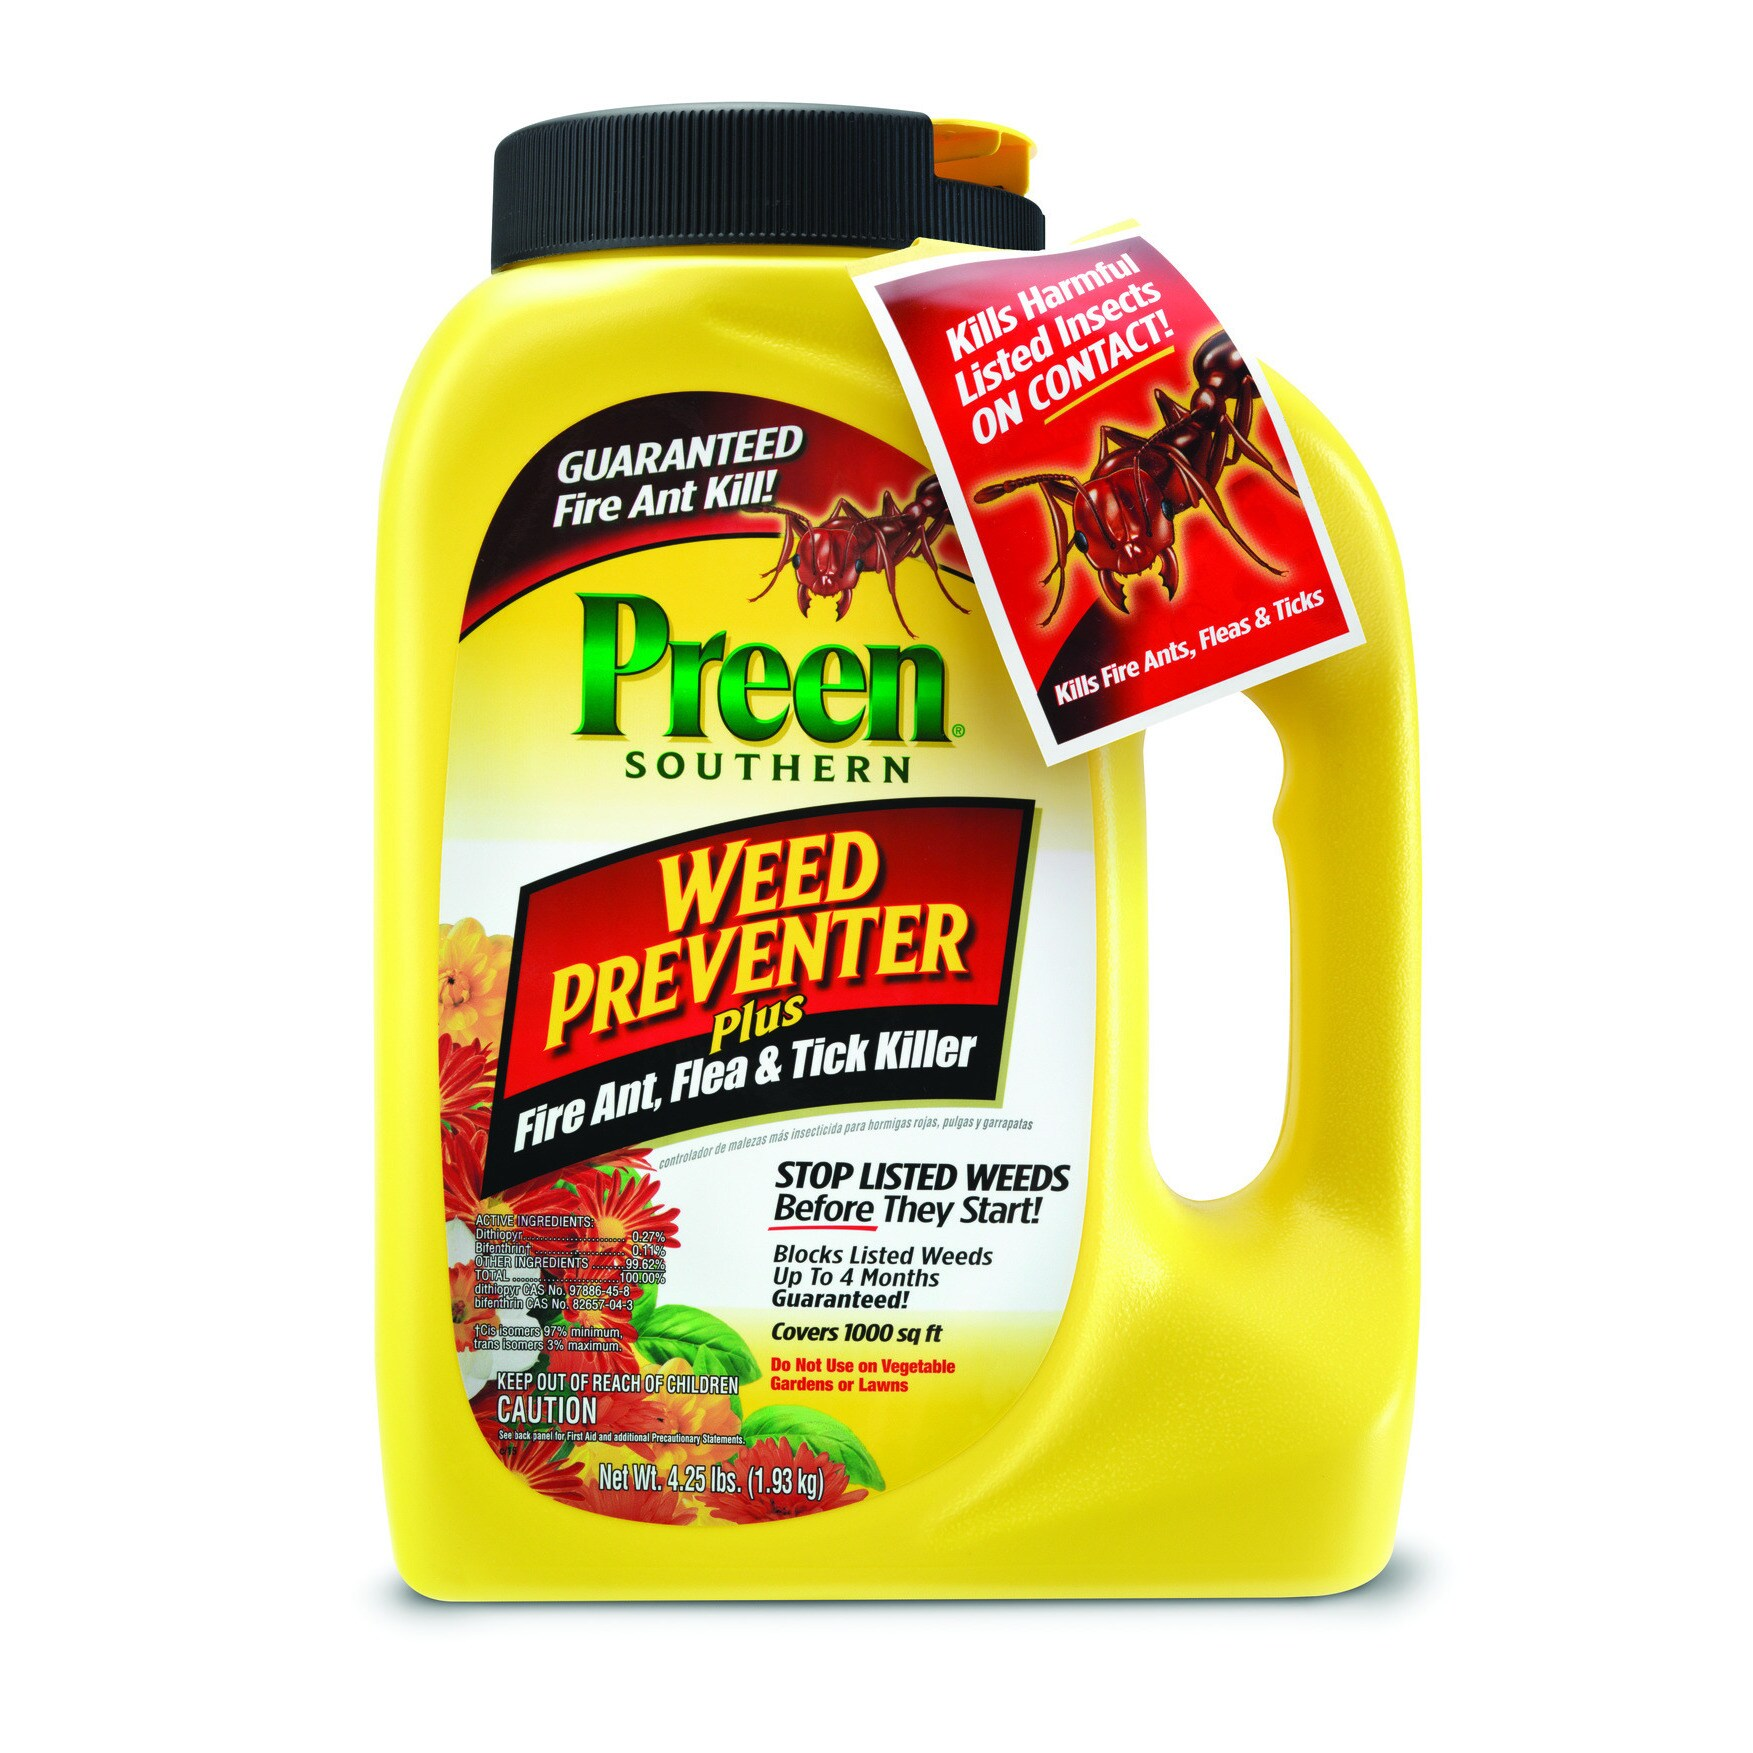 Southern Garden Weed Preventer Plus Fire Ant/ Flea and Ti...